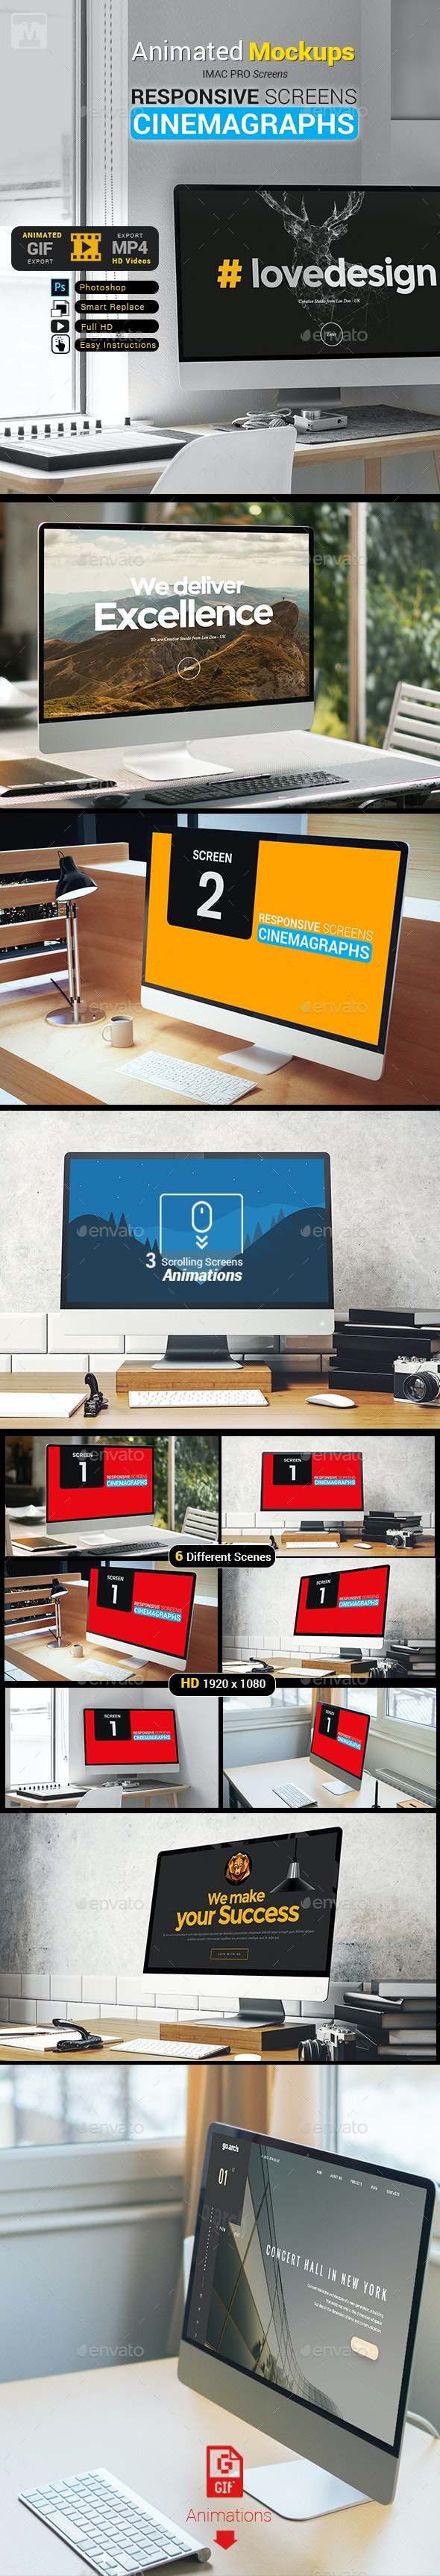 Responsive Cinemagraphs Screens-IMac -Animated Mockups - Monitors Displays